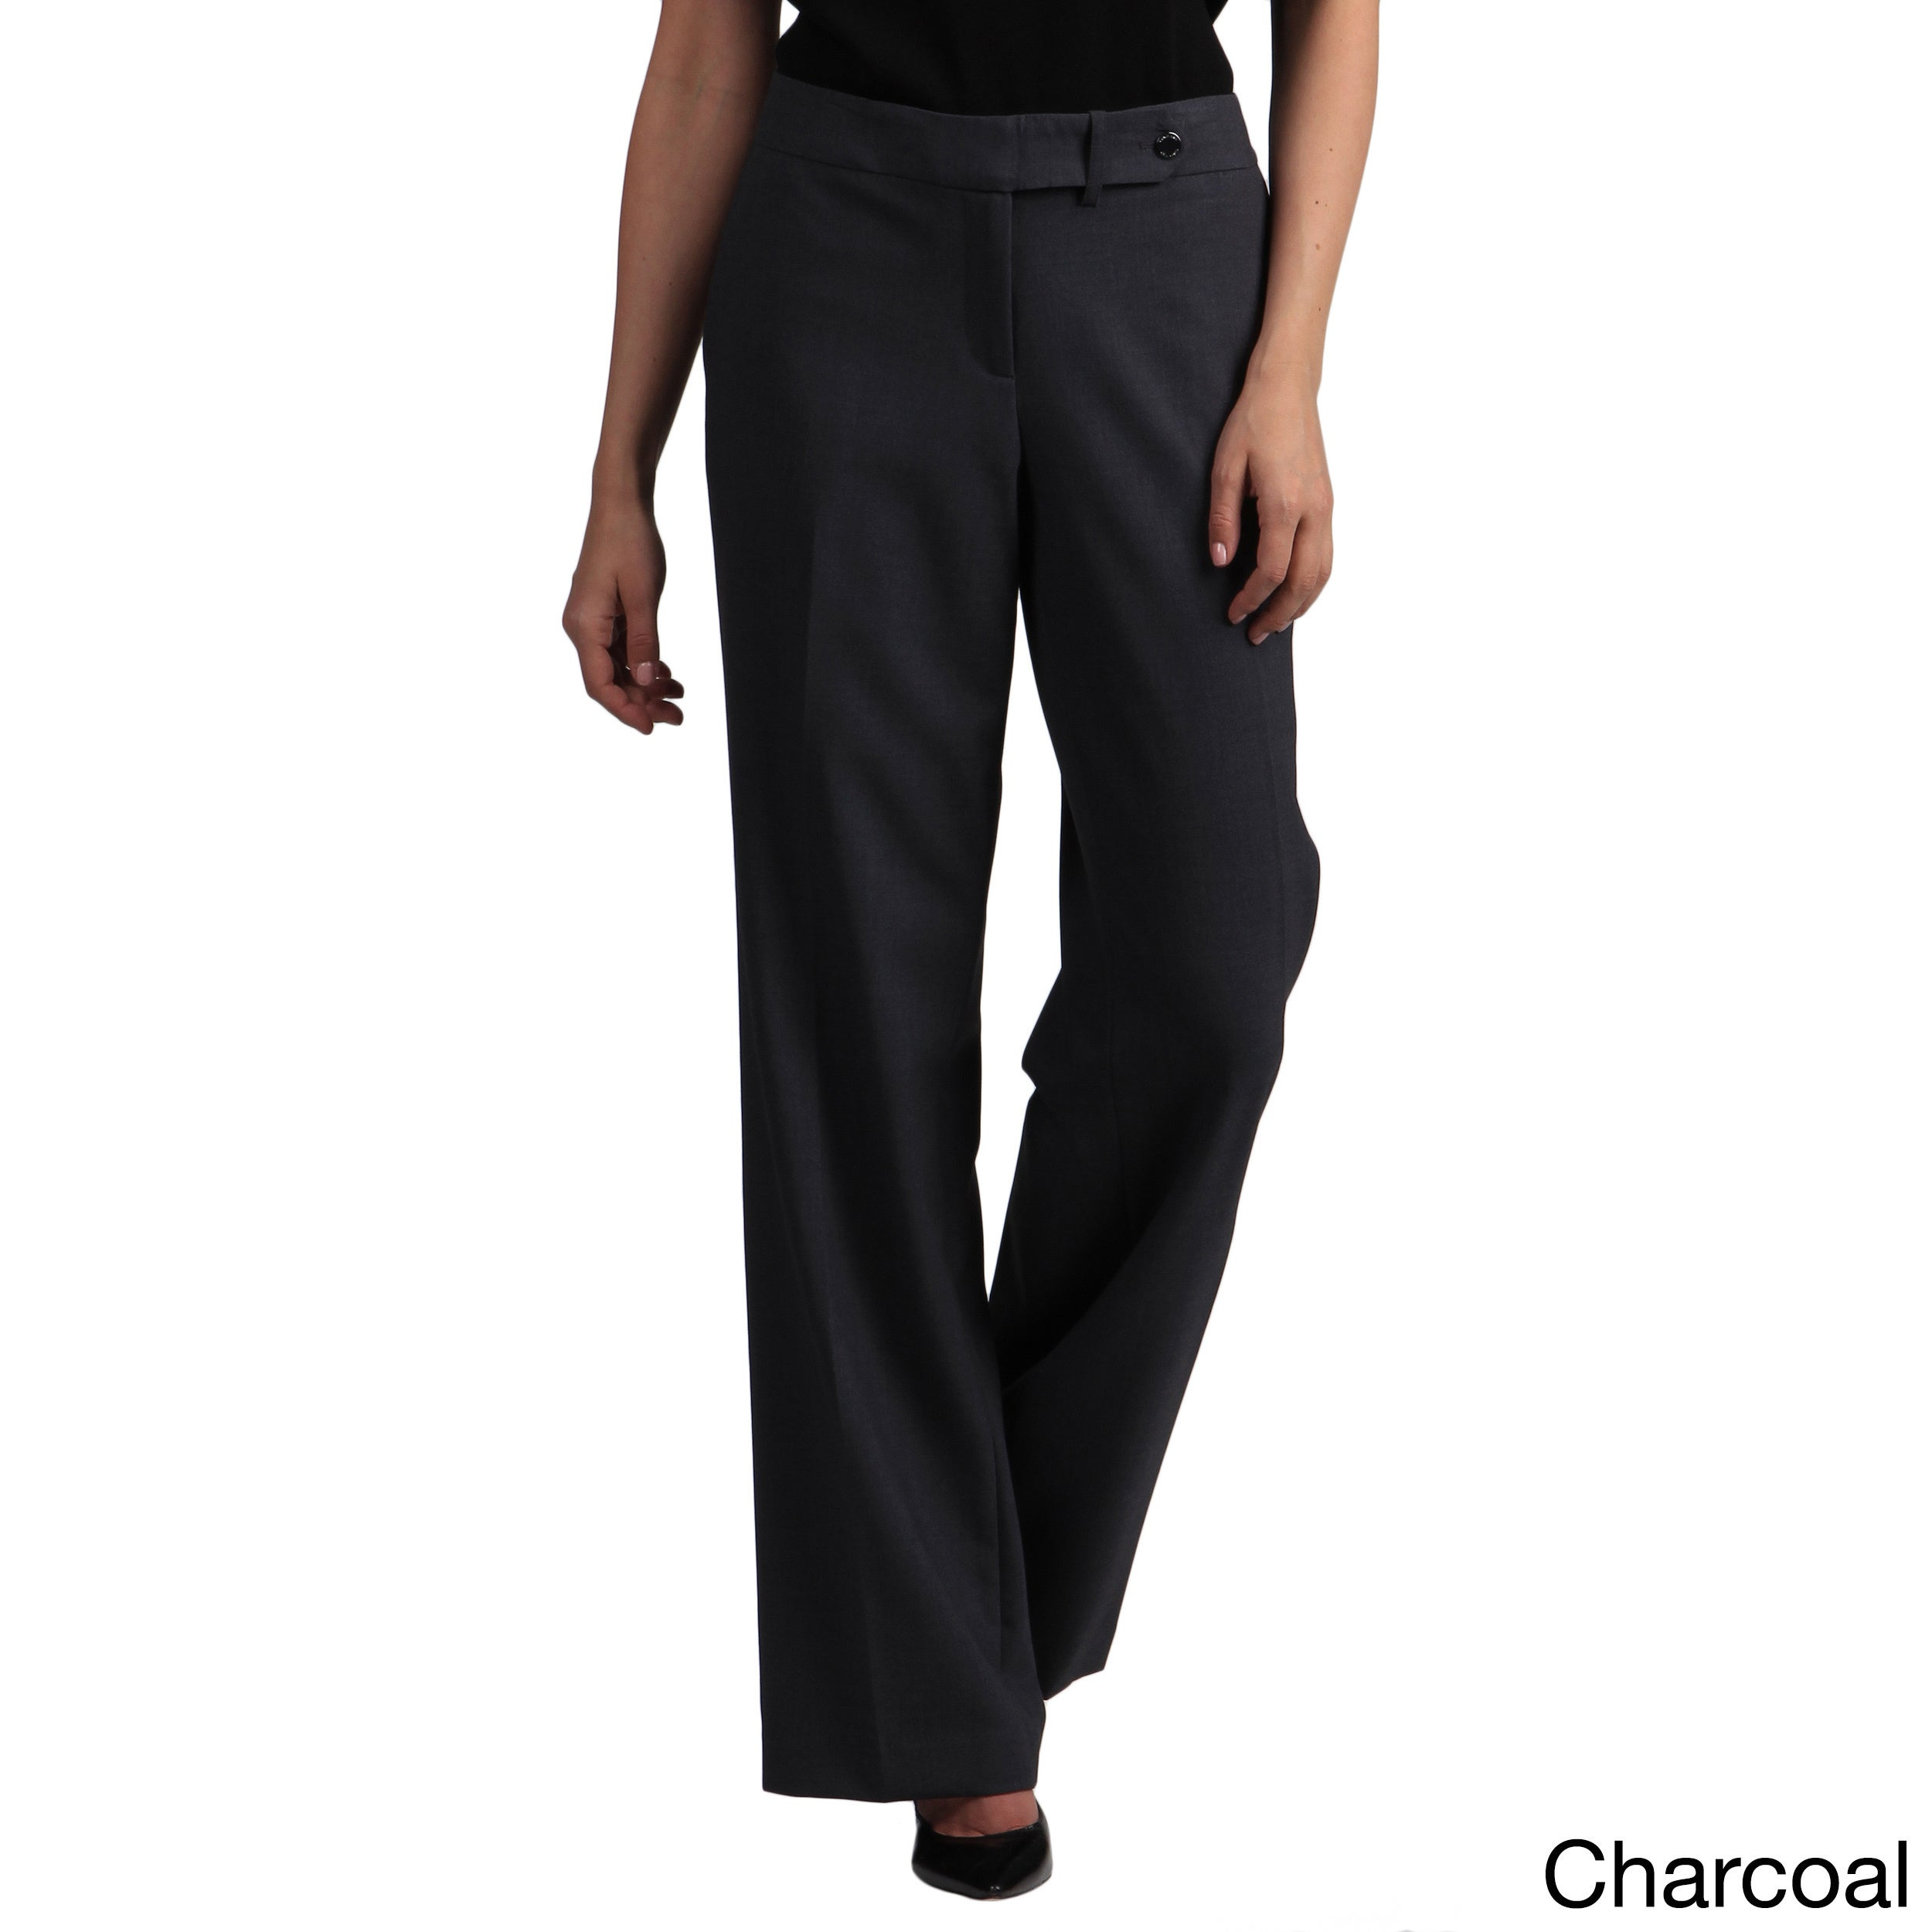 465850da458ebf Shop Calvin Klein Women's Straight Classic Fit Pants - Free Shipping Today  - Overstock - 8019890